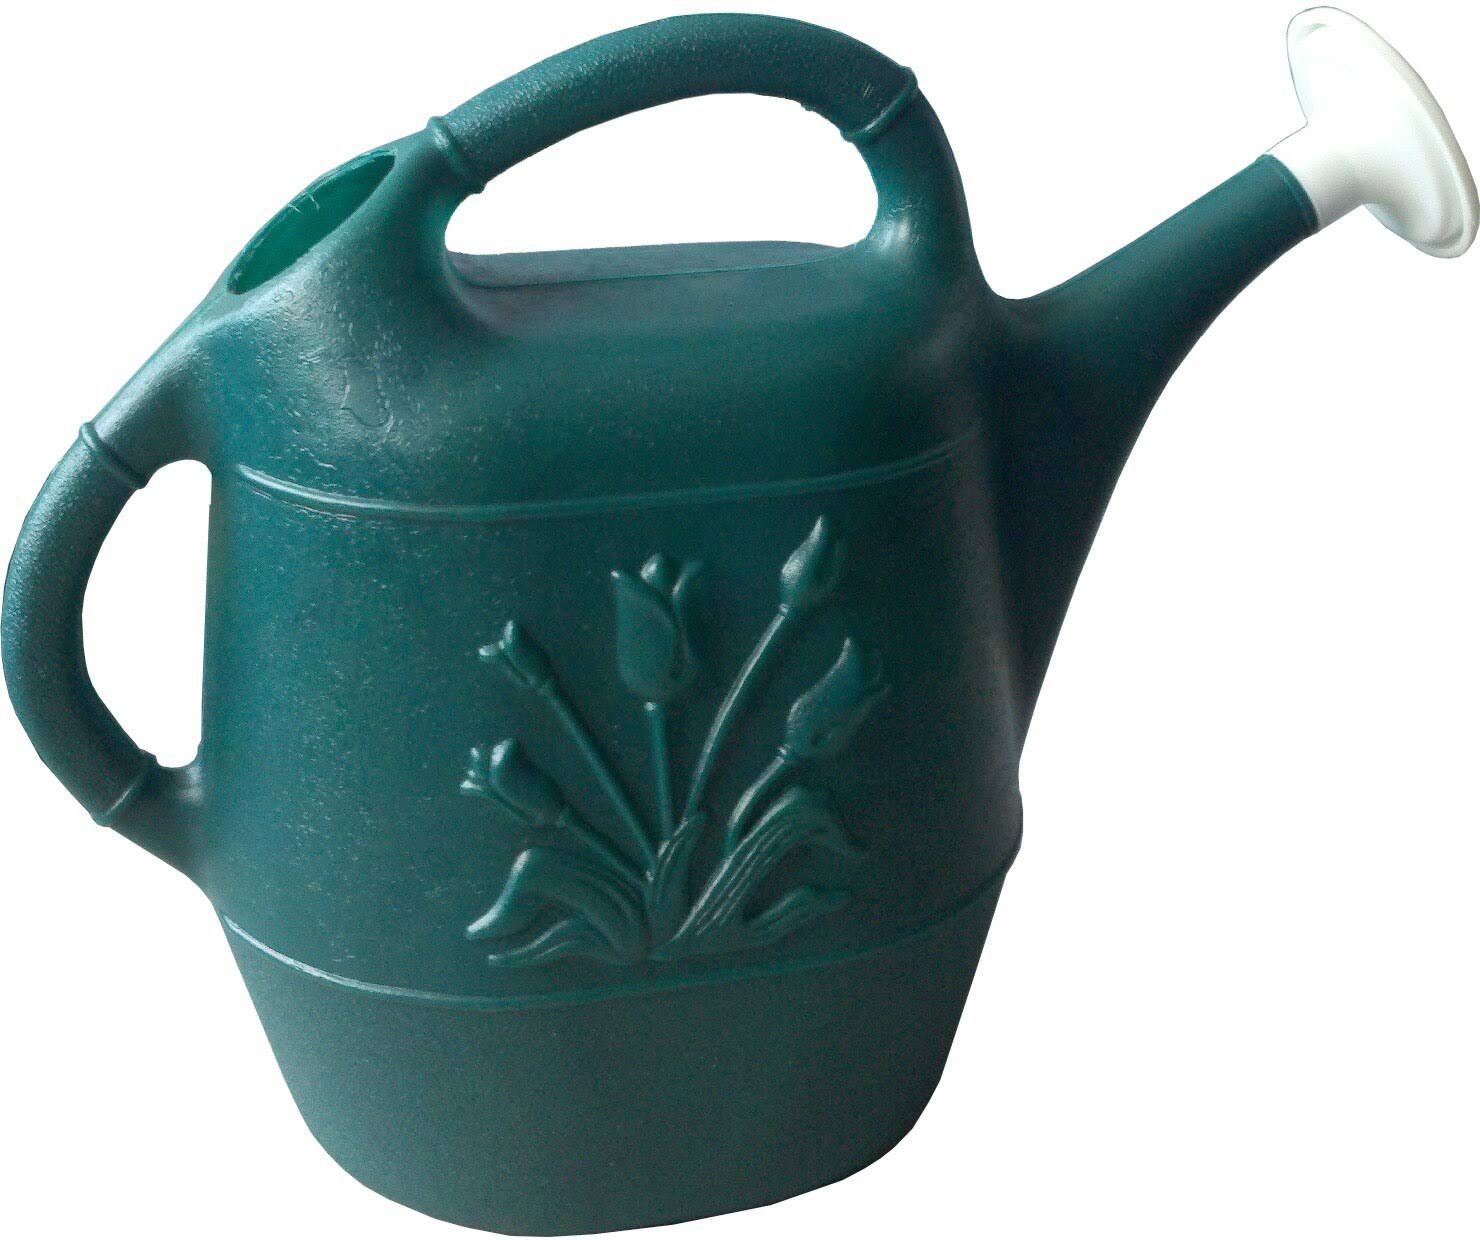 Union 2-Gallon Watering Can - Hunter Green